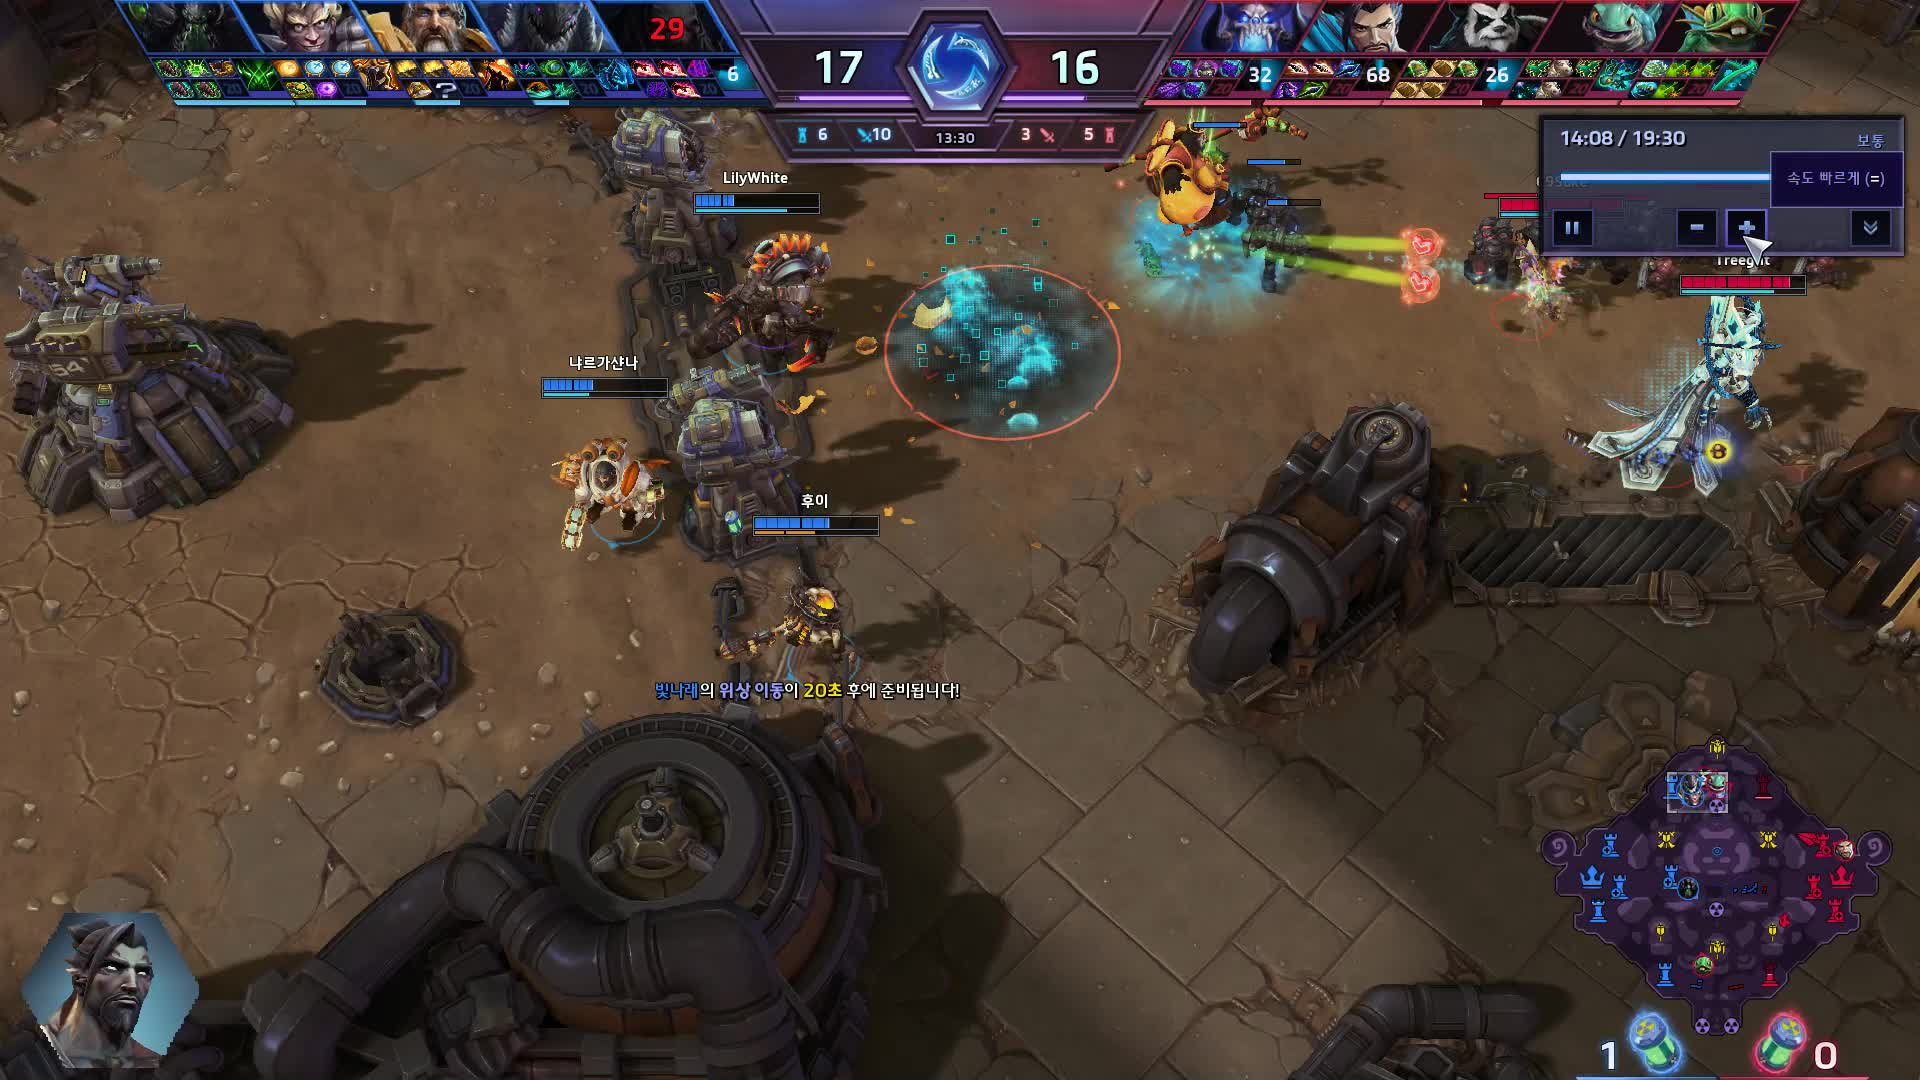 heroesofthestorm, Heroes of the Storm 2019.04.20 - 20.38.10.07.DVR Trim GIFs